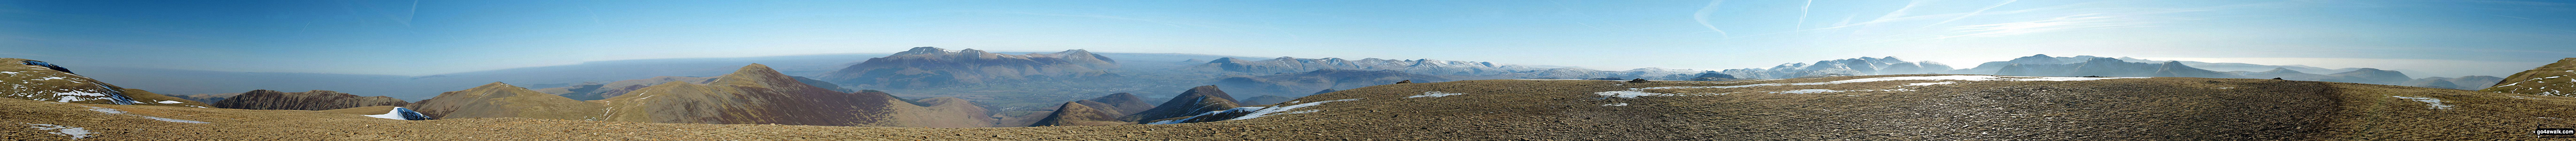 The Coledale Horseshoe from Crag Hill (Eel Crag) trig point featuring: Grasmoor, Grasmoor, Whiteside (Crummock) (West Top), Whiteside (Crummock), Gasgale Crags, Hopegill Head, Sand Hill, The top of Hobcarton Crag, Grisdale Pike, The Skiddaw massif, Blencathra (or Saddleback), Keswick, Sleet How, Outerside, Stile End, Sail, Causey Pike, Bleaberry Fell, High Seat, High Tove, The Southern Fells and The Western Fells